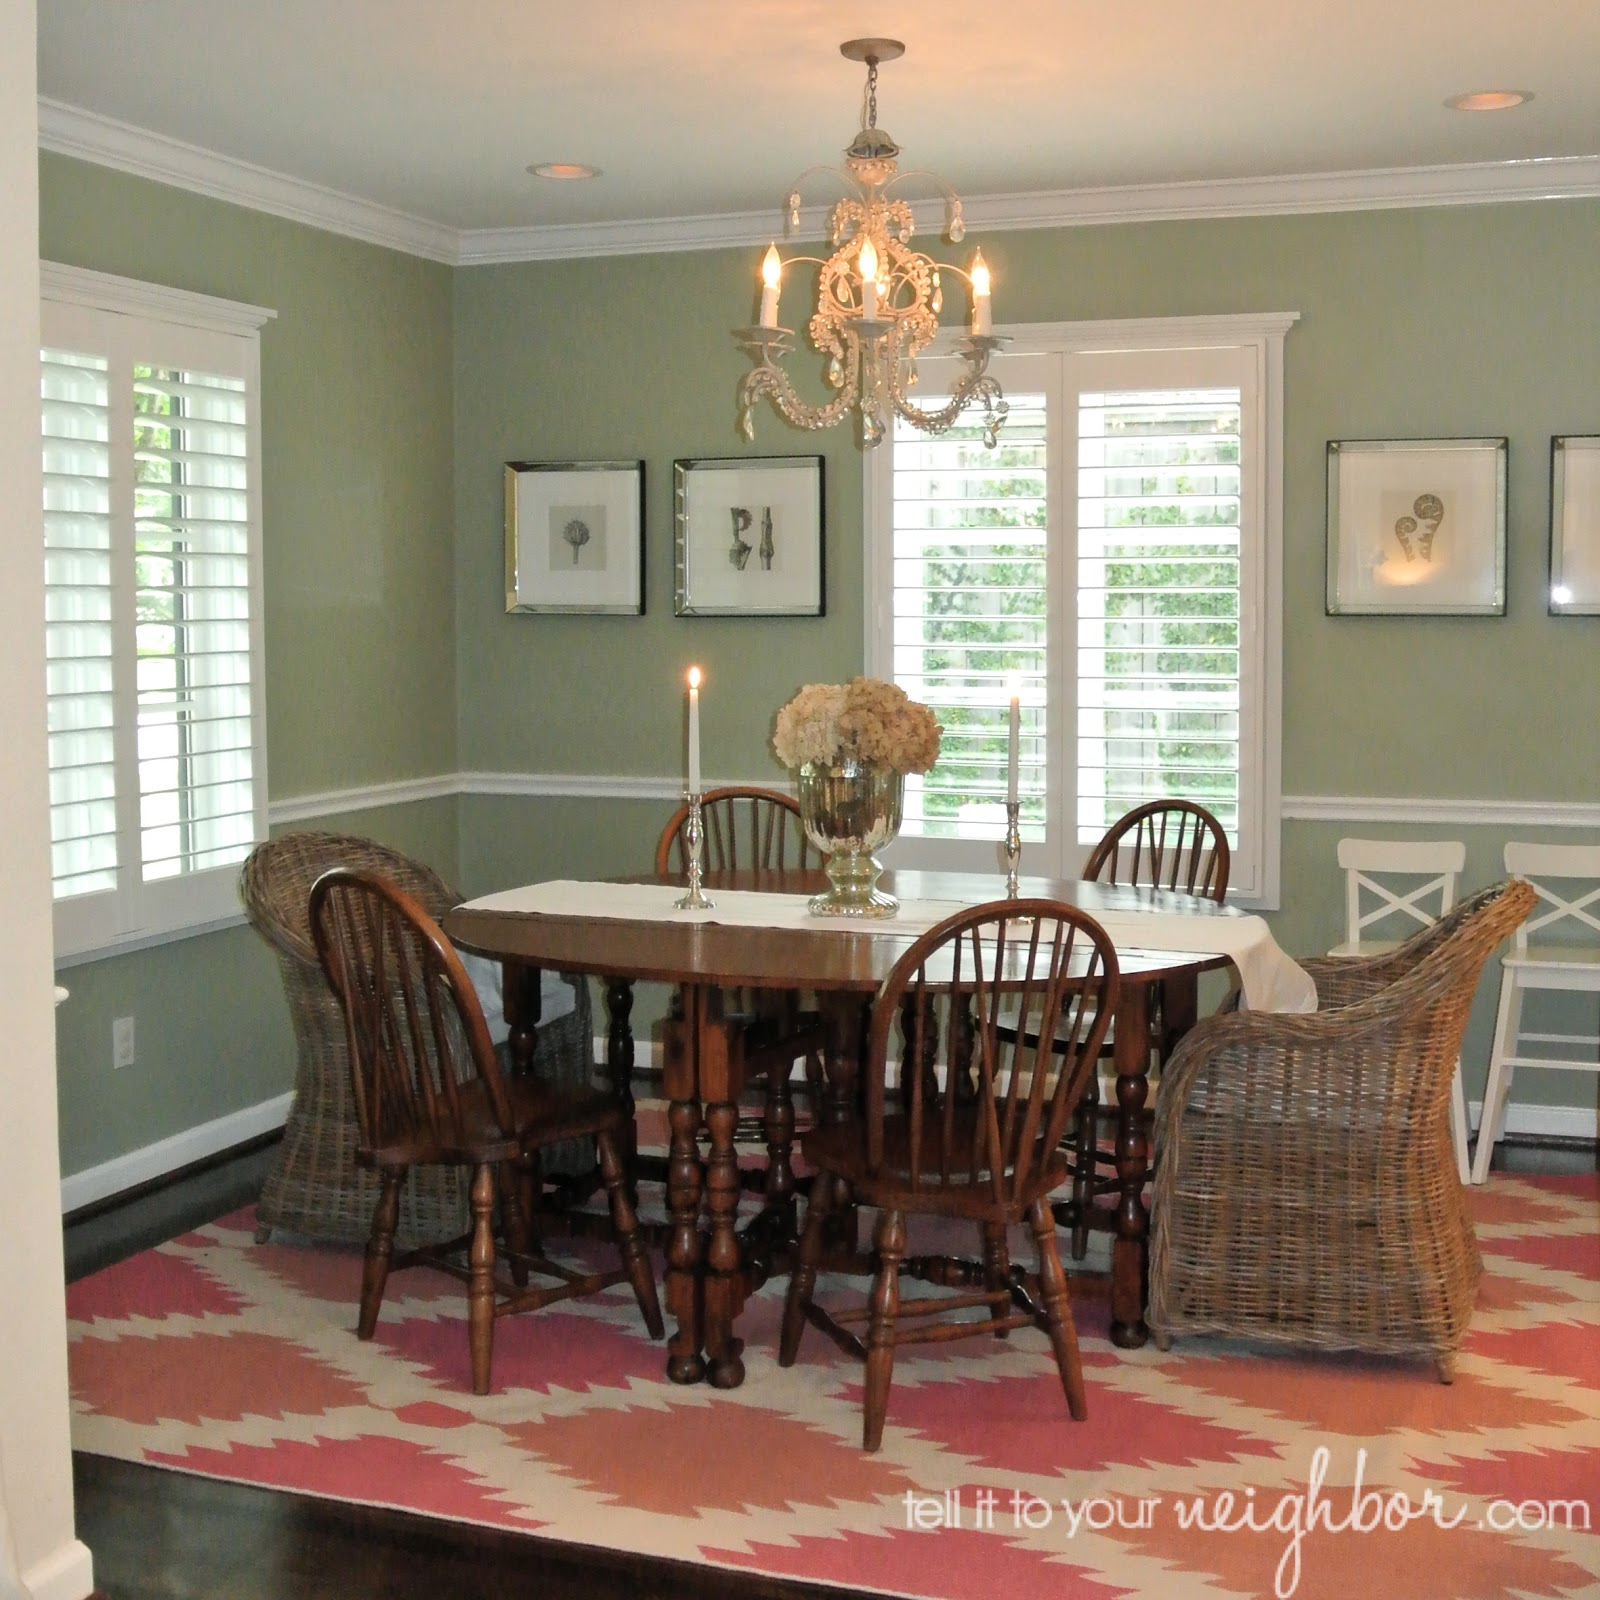 Rug In Dining Room: Tell It To Your Neighbor!: Dining Room Rug